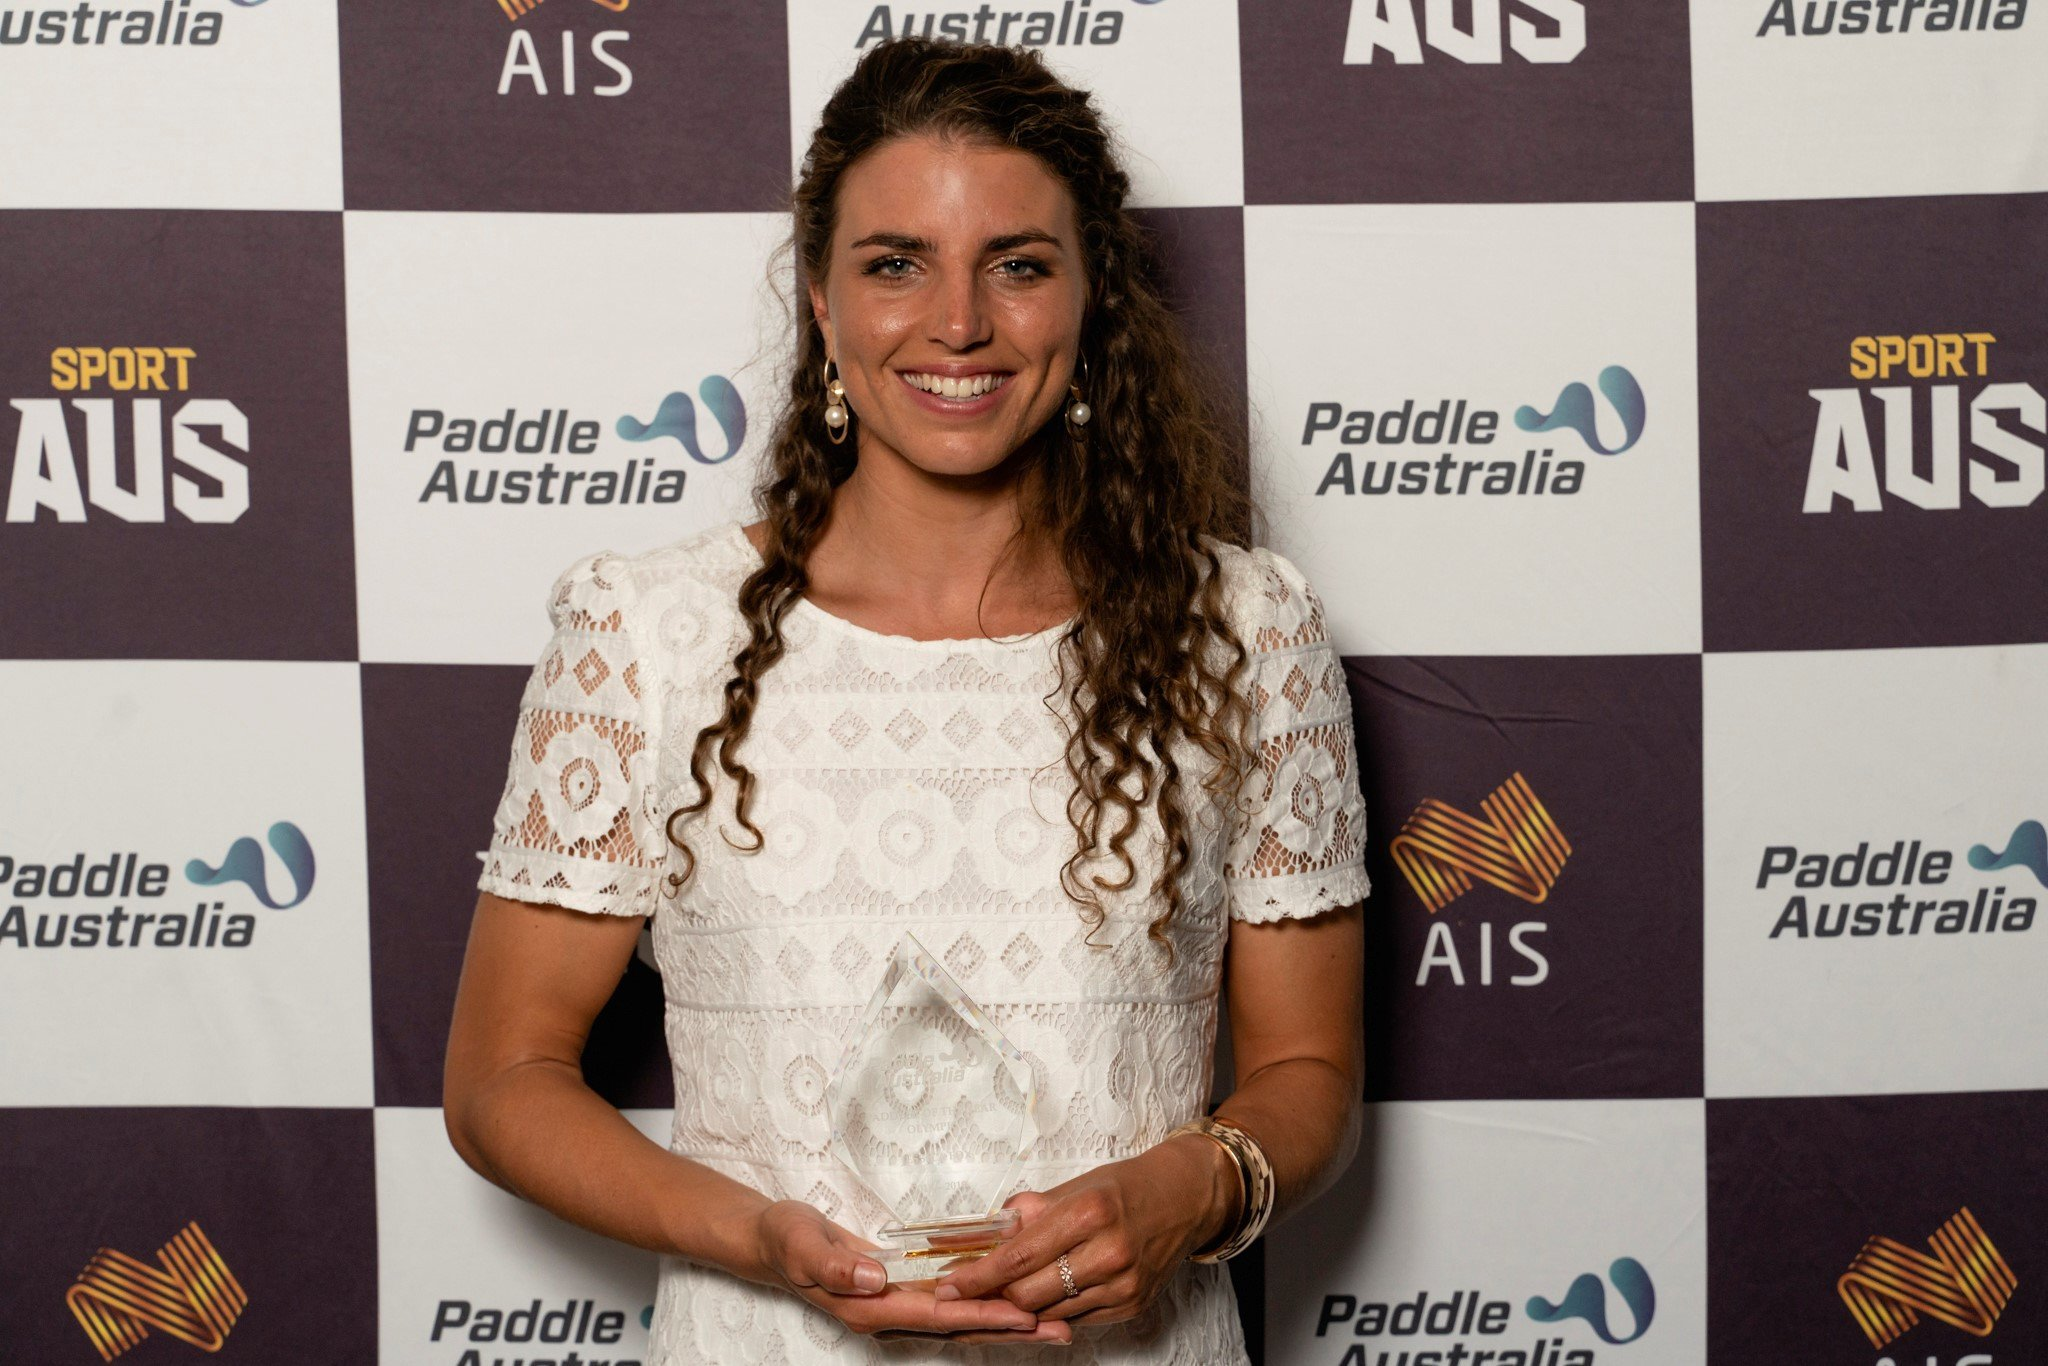 Jessica Fox was crowned as the 2019 Paddler of the Year by Paddle Australia ©Paddle Australia